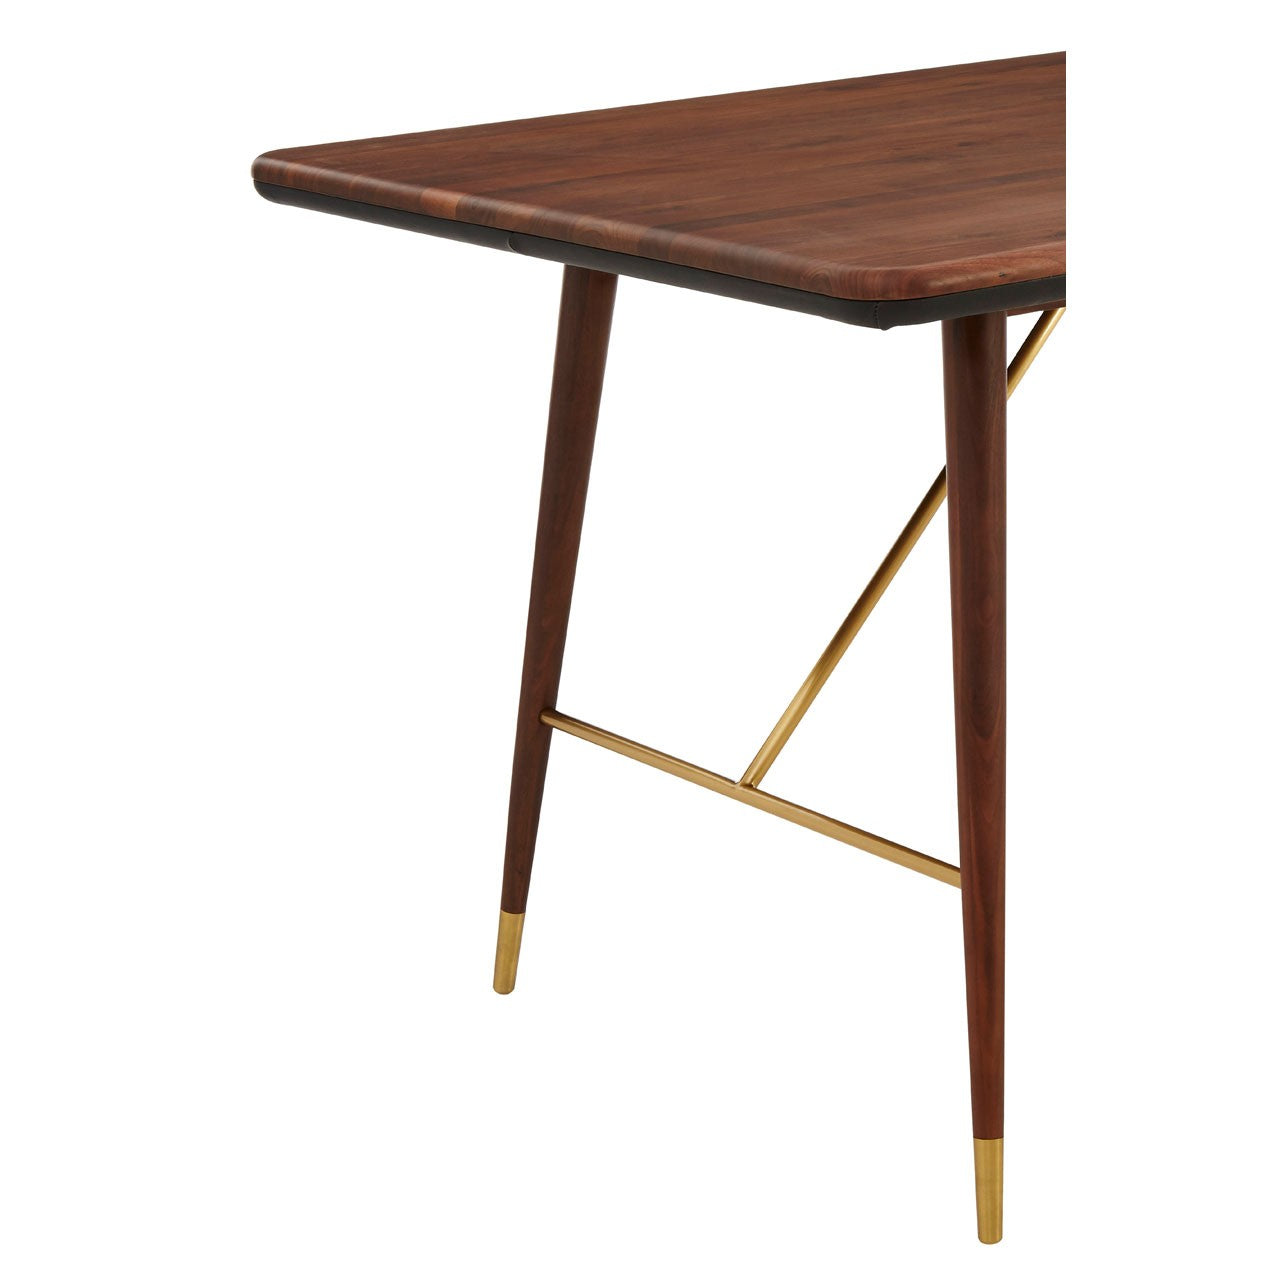 Kenso Walnut Wood and Brass Finish Dining Table